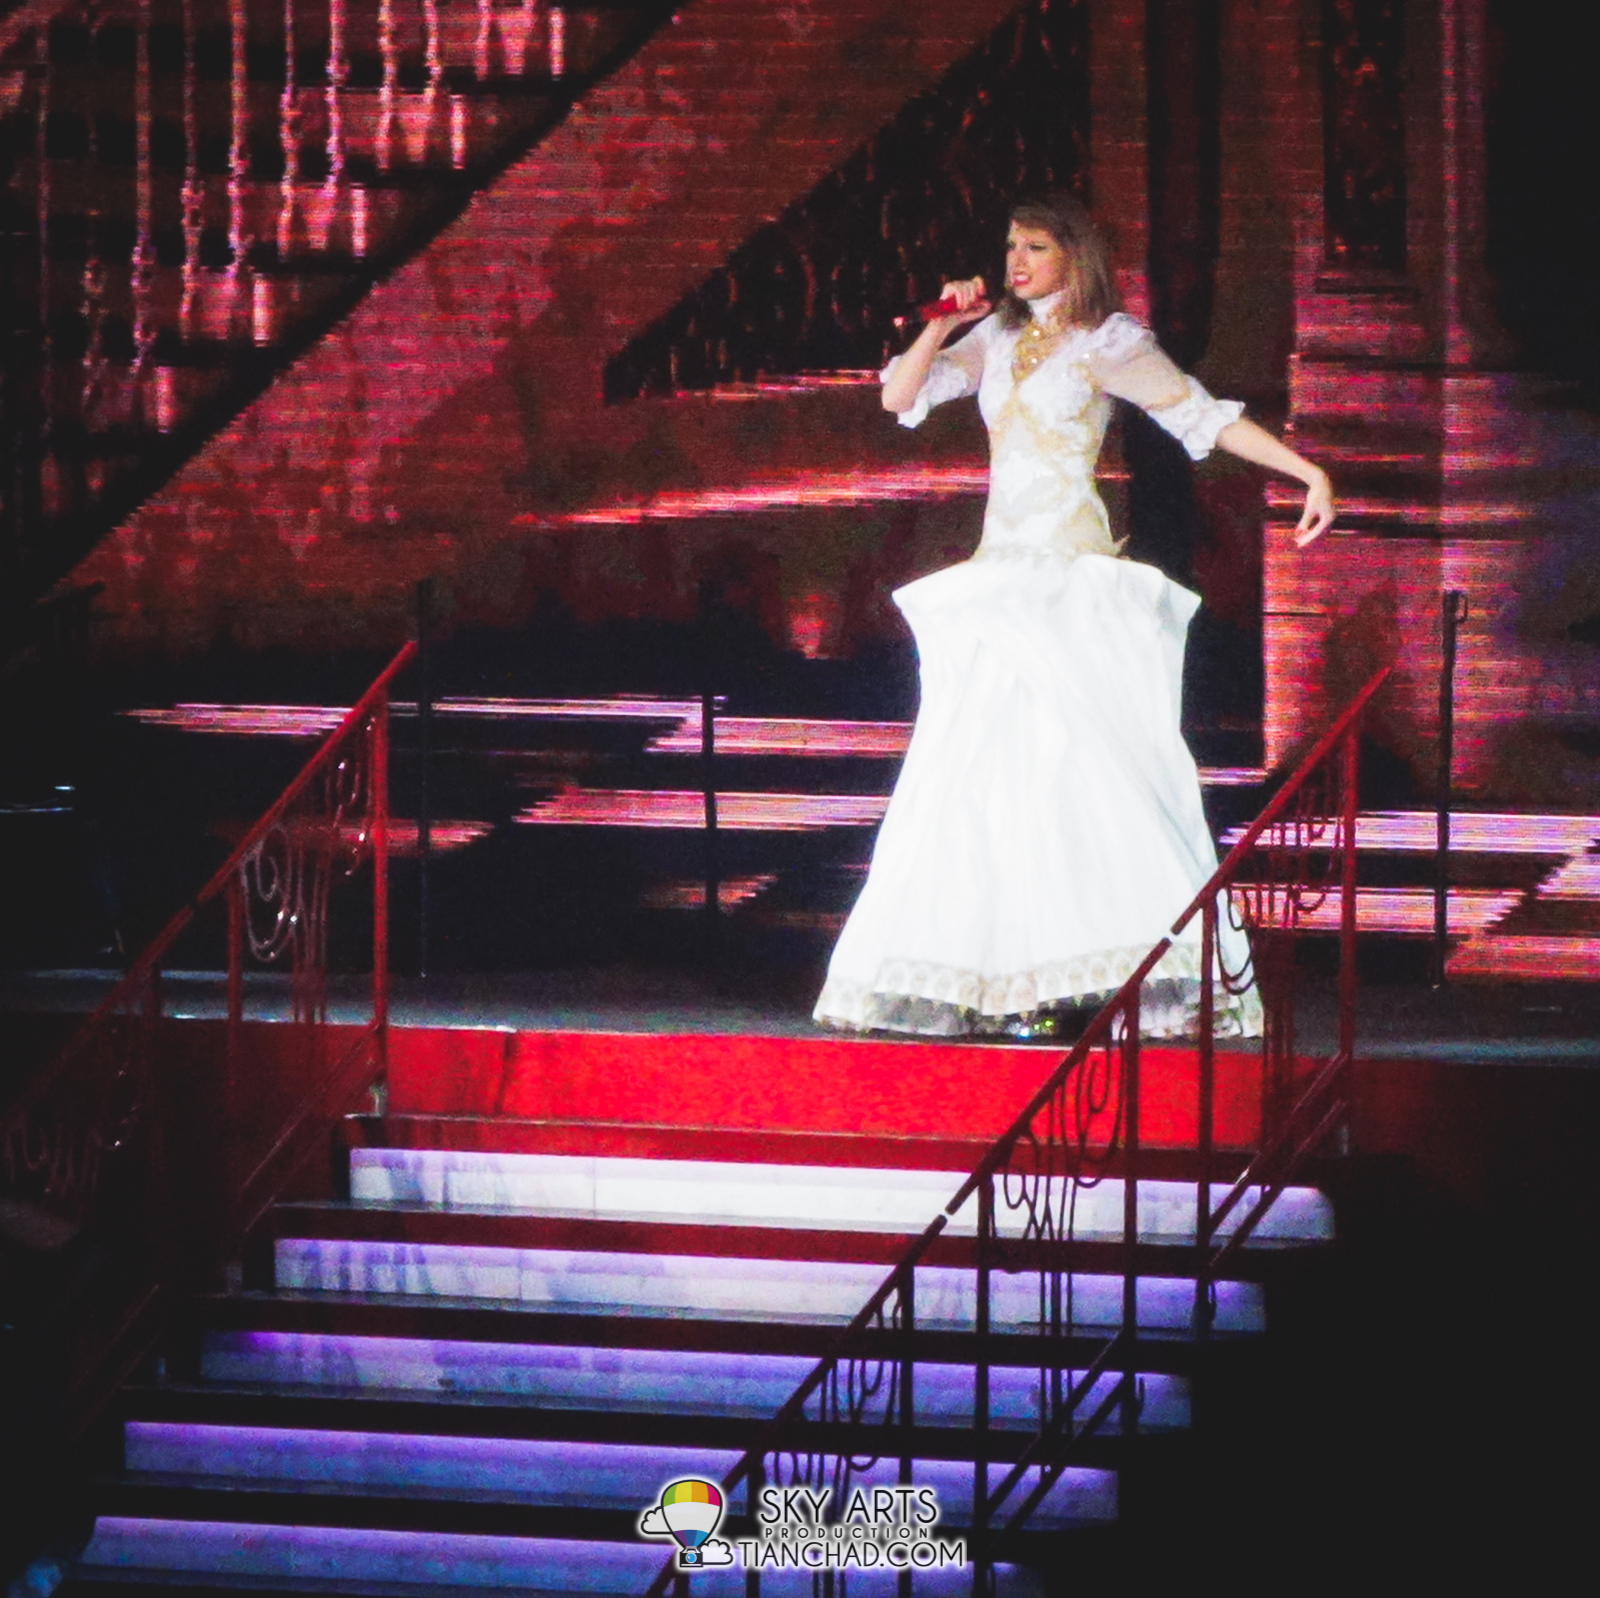 Taylor Swift in her Princess White Dress